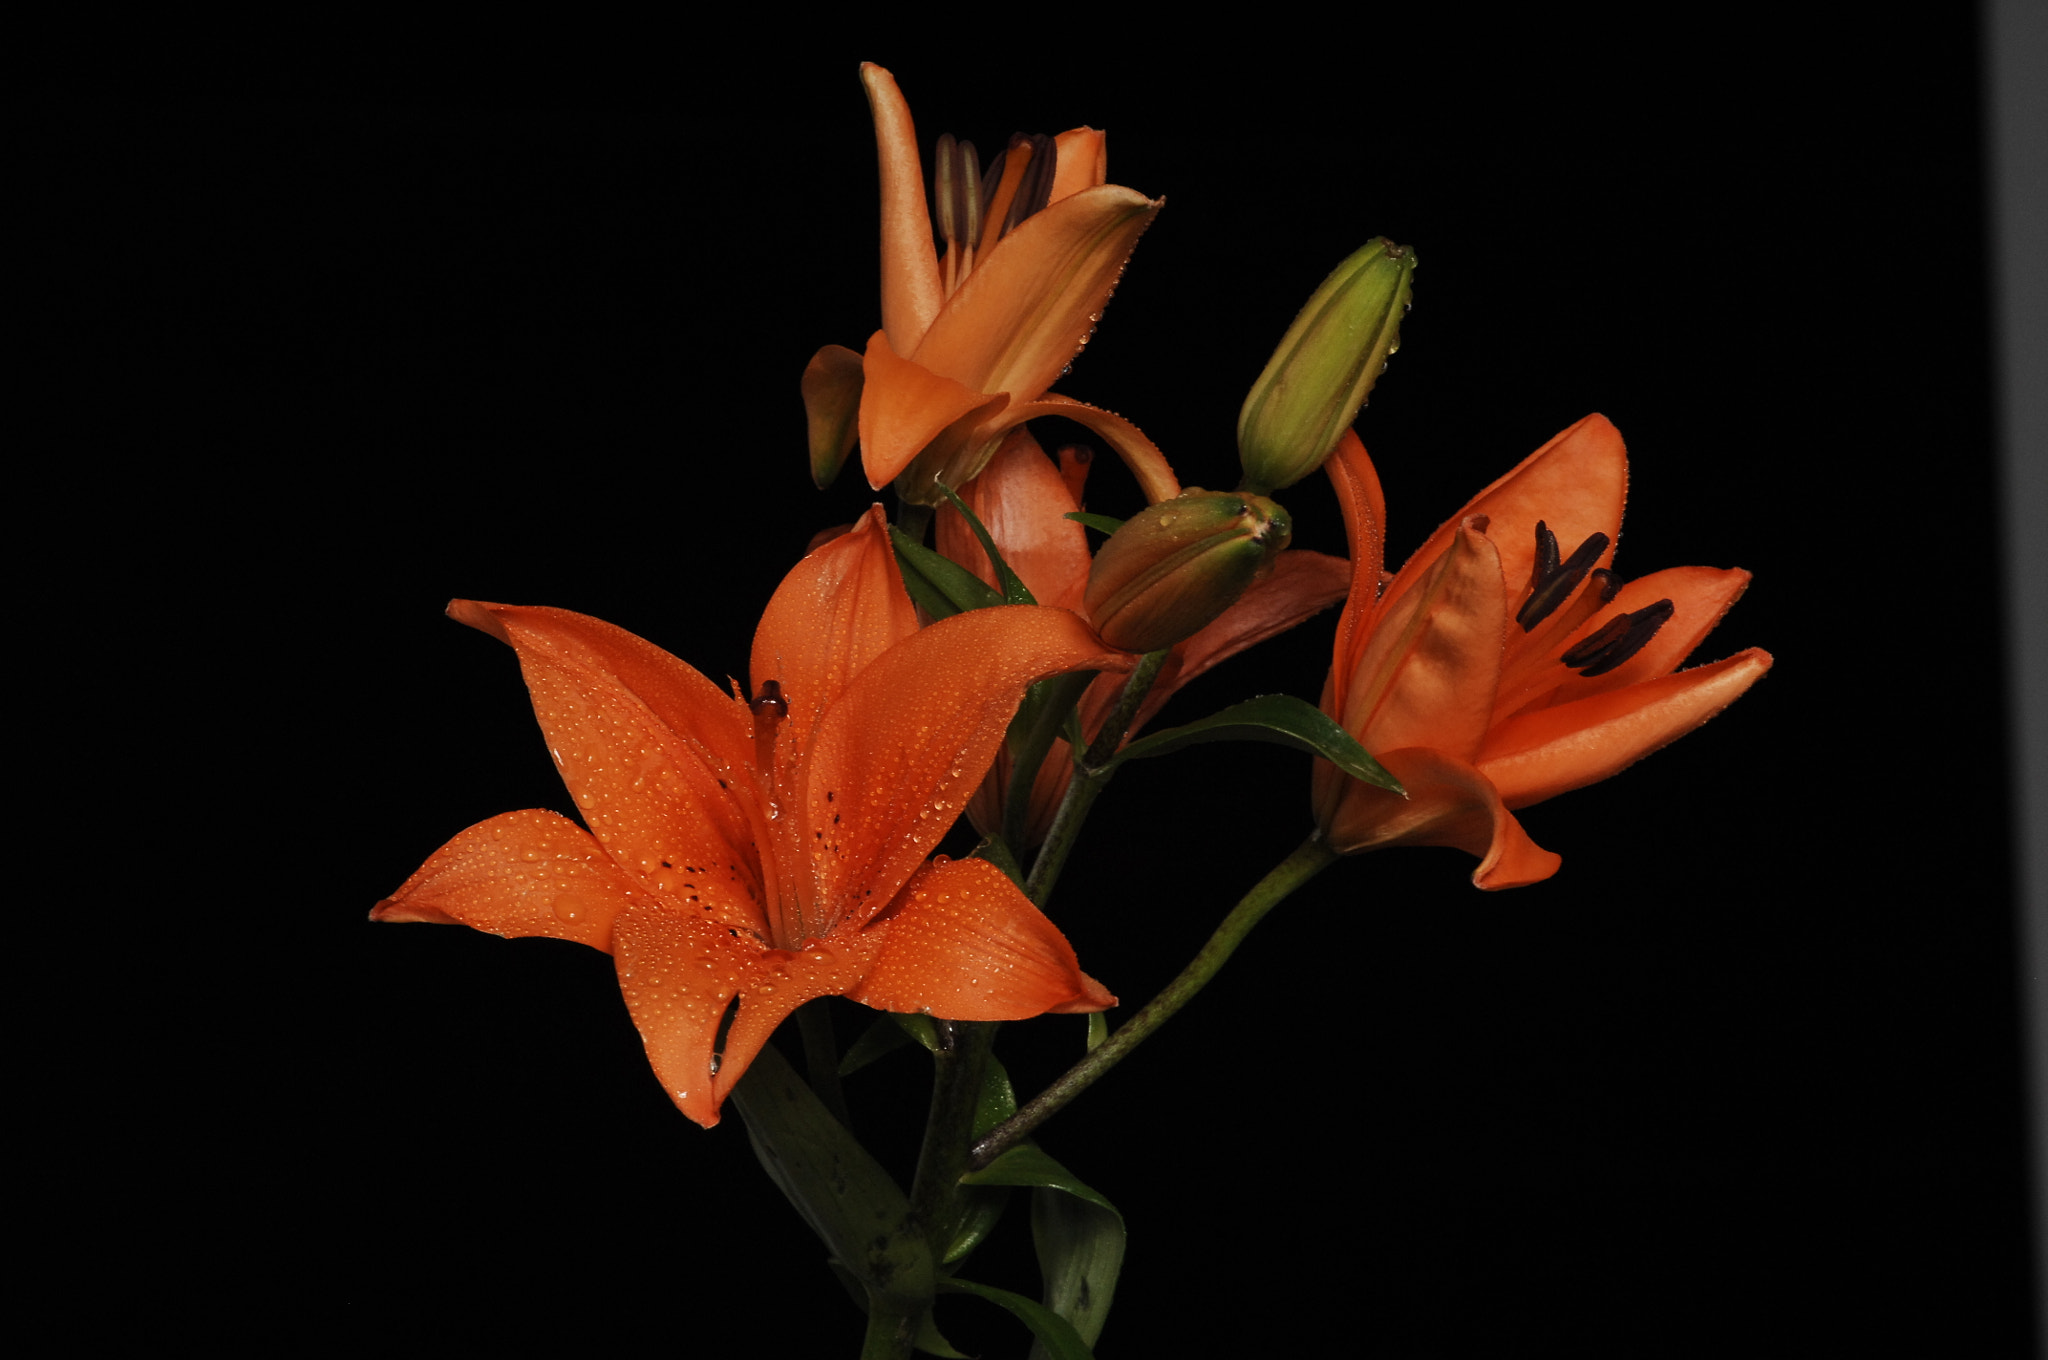 Photograph Lilies and leaves by Cristobal Garciaferro Rubio on 500px